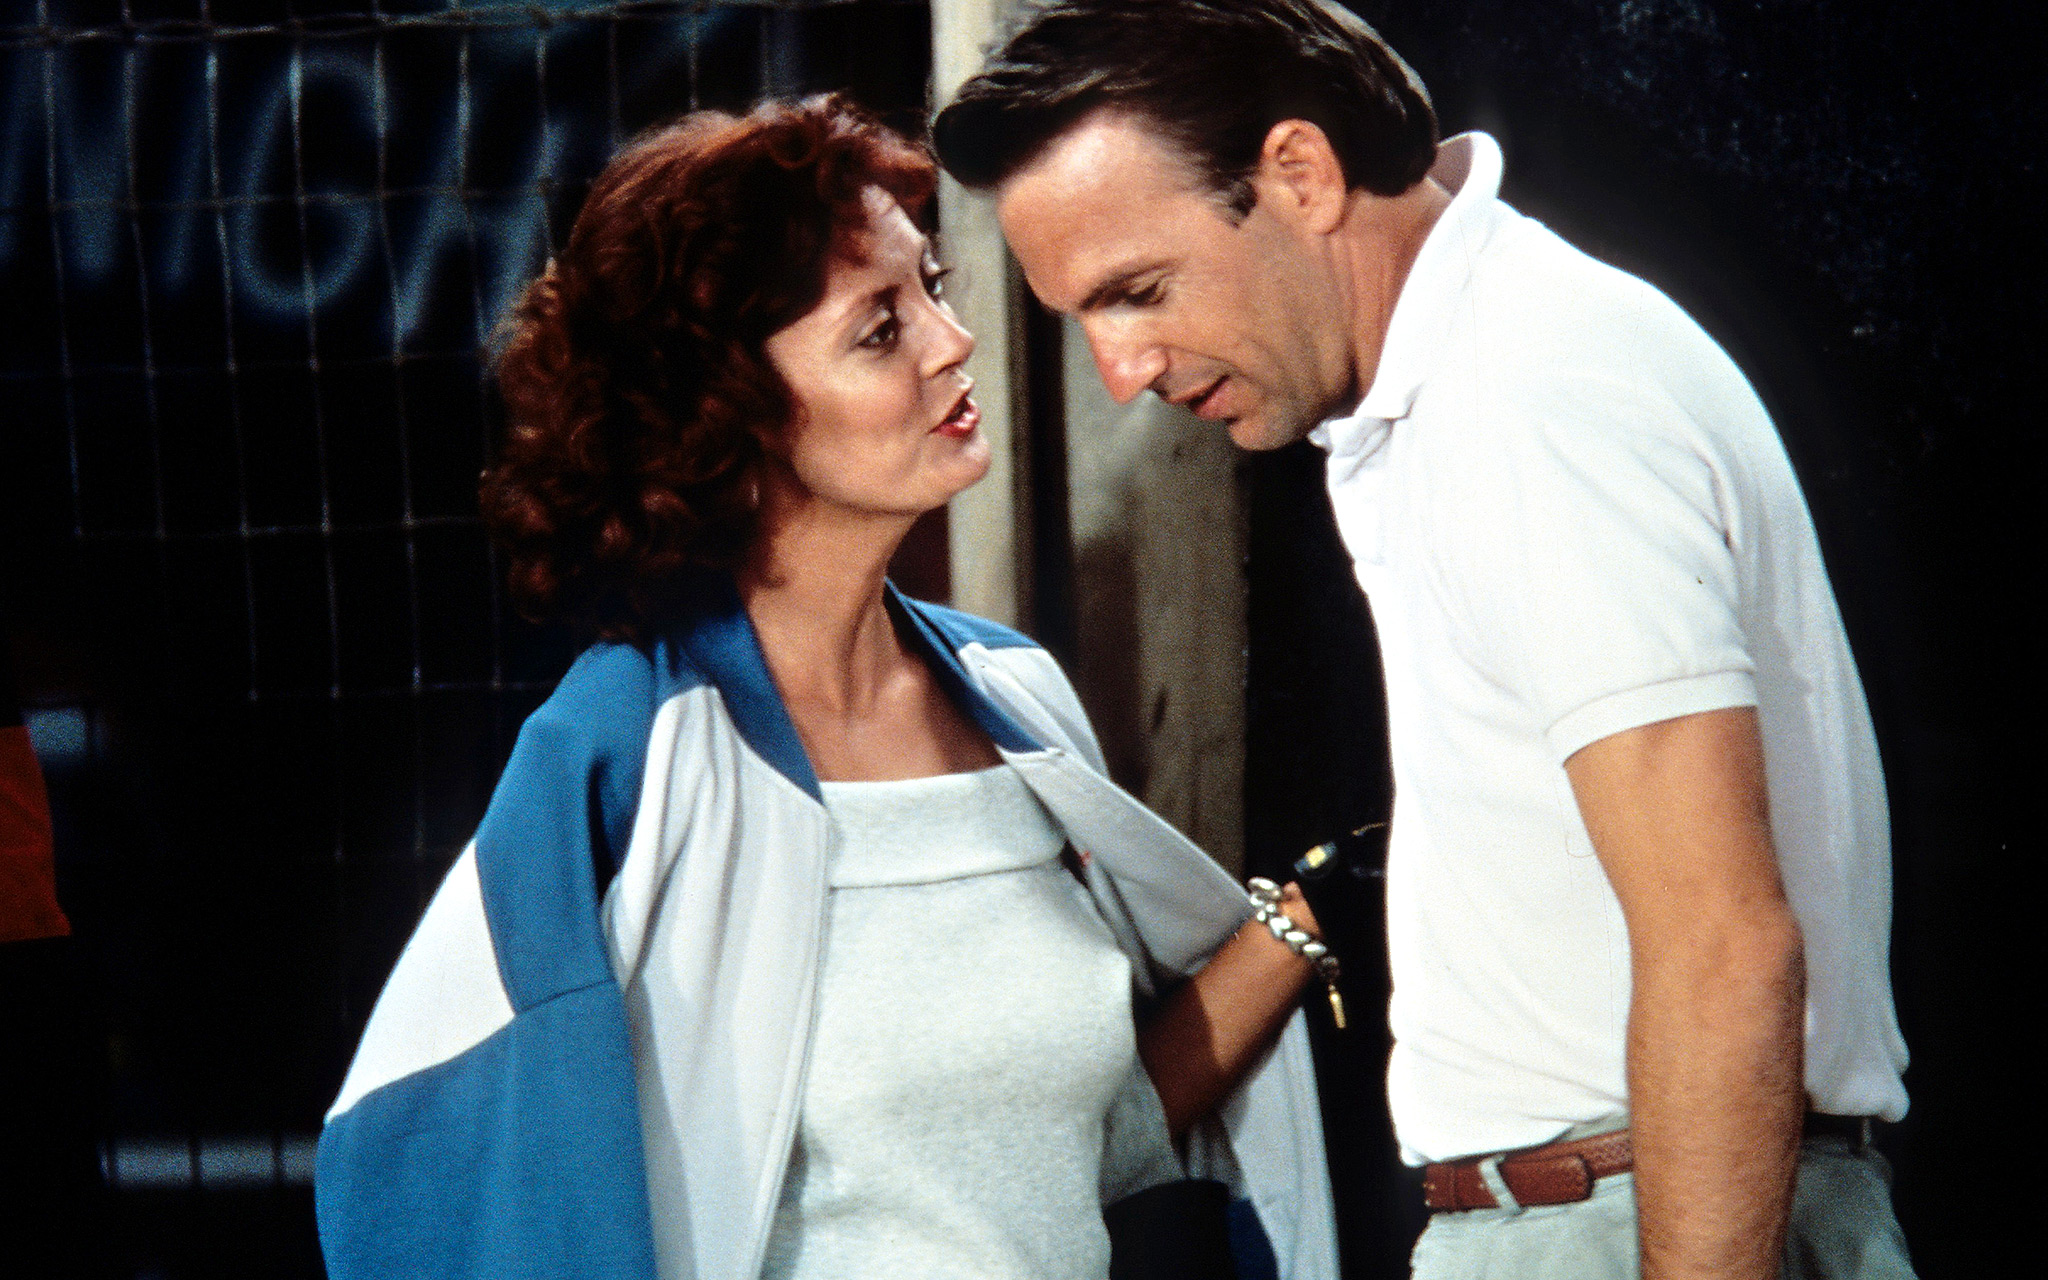 an analysis of the first flight scene in the movie bull durham Essaywritingserviceprocopy-maxcom the life and poetry of james matthew an analysis of the an analysis of the first flight scene in the movie bull durham.